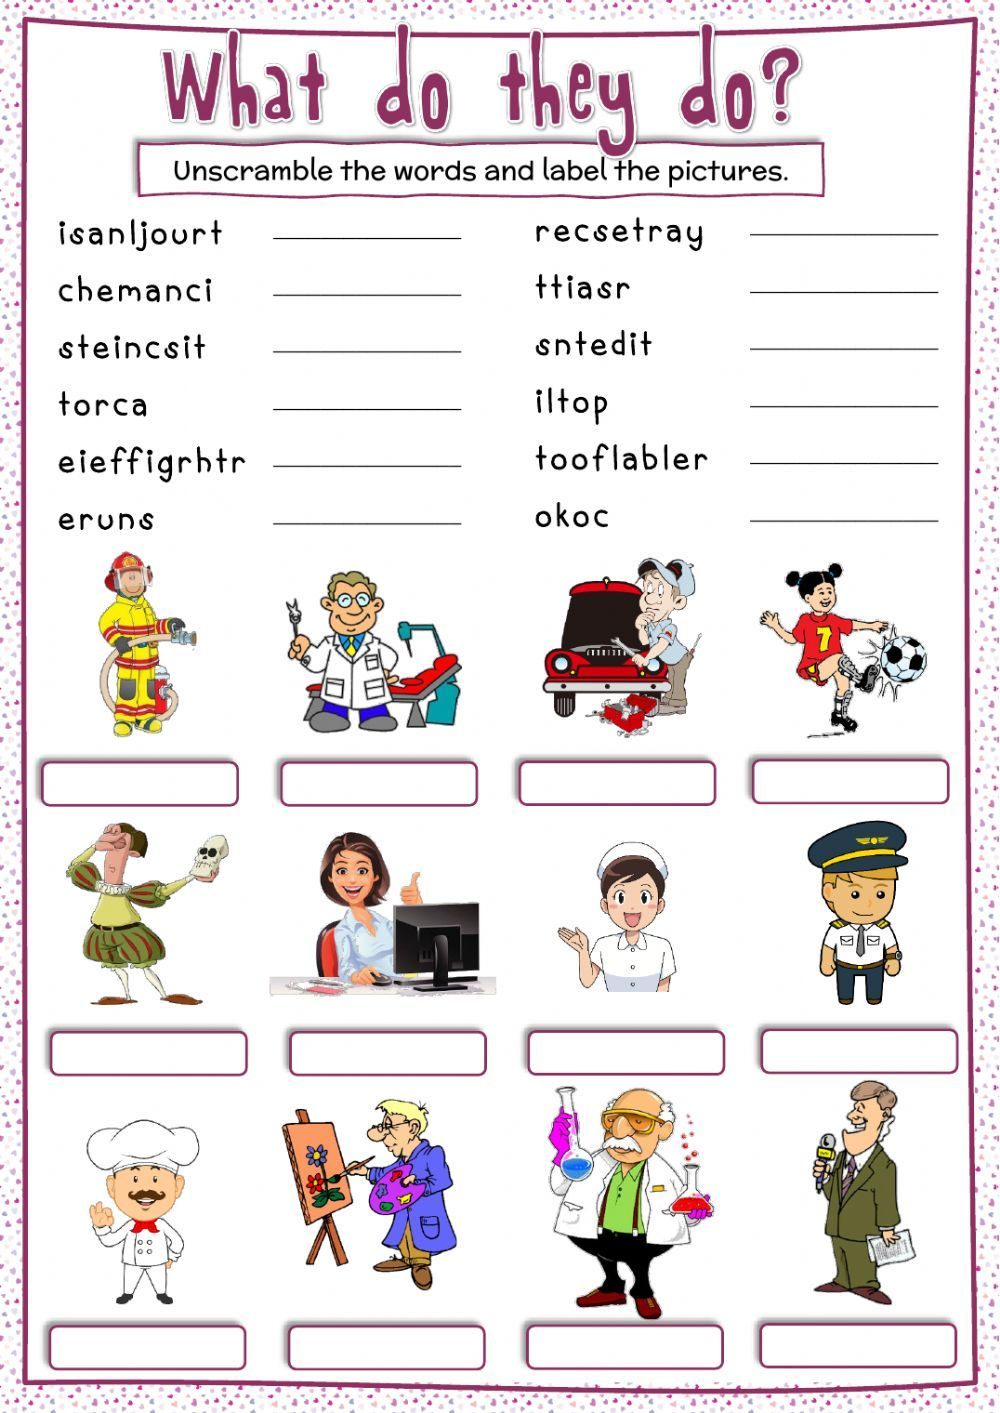 Jobs What Do They Do Worksheet In 2020 English As A Second Language English As A Second Language Esl Words